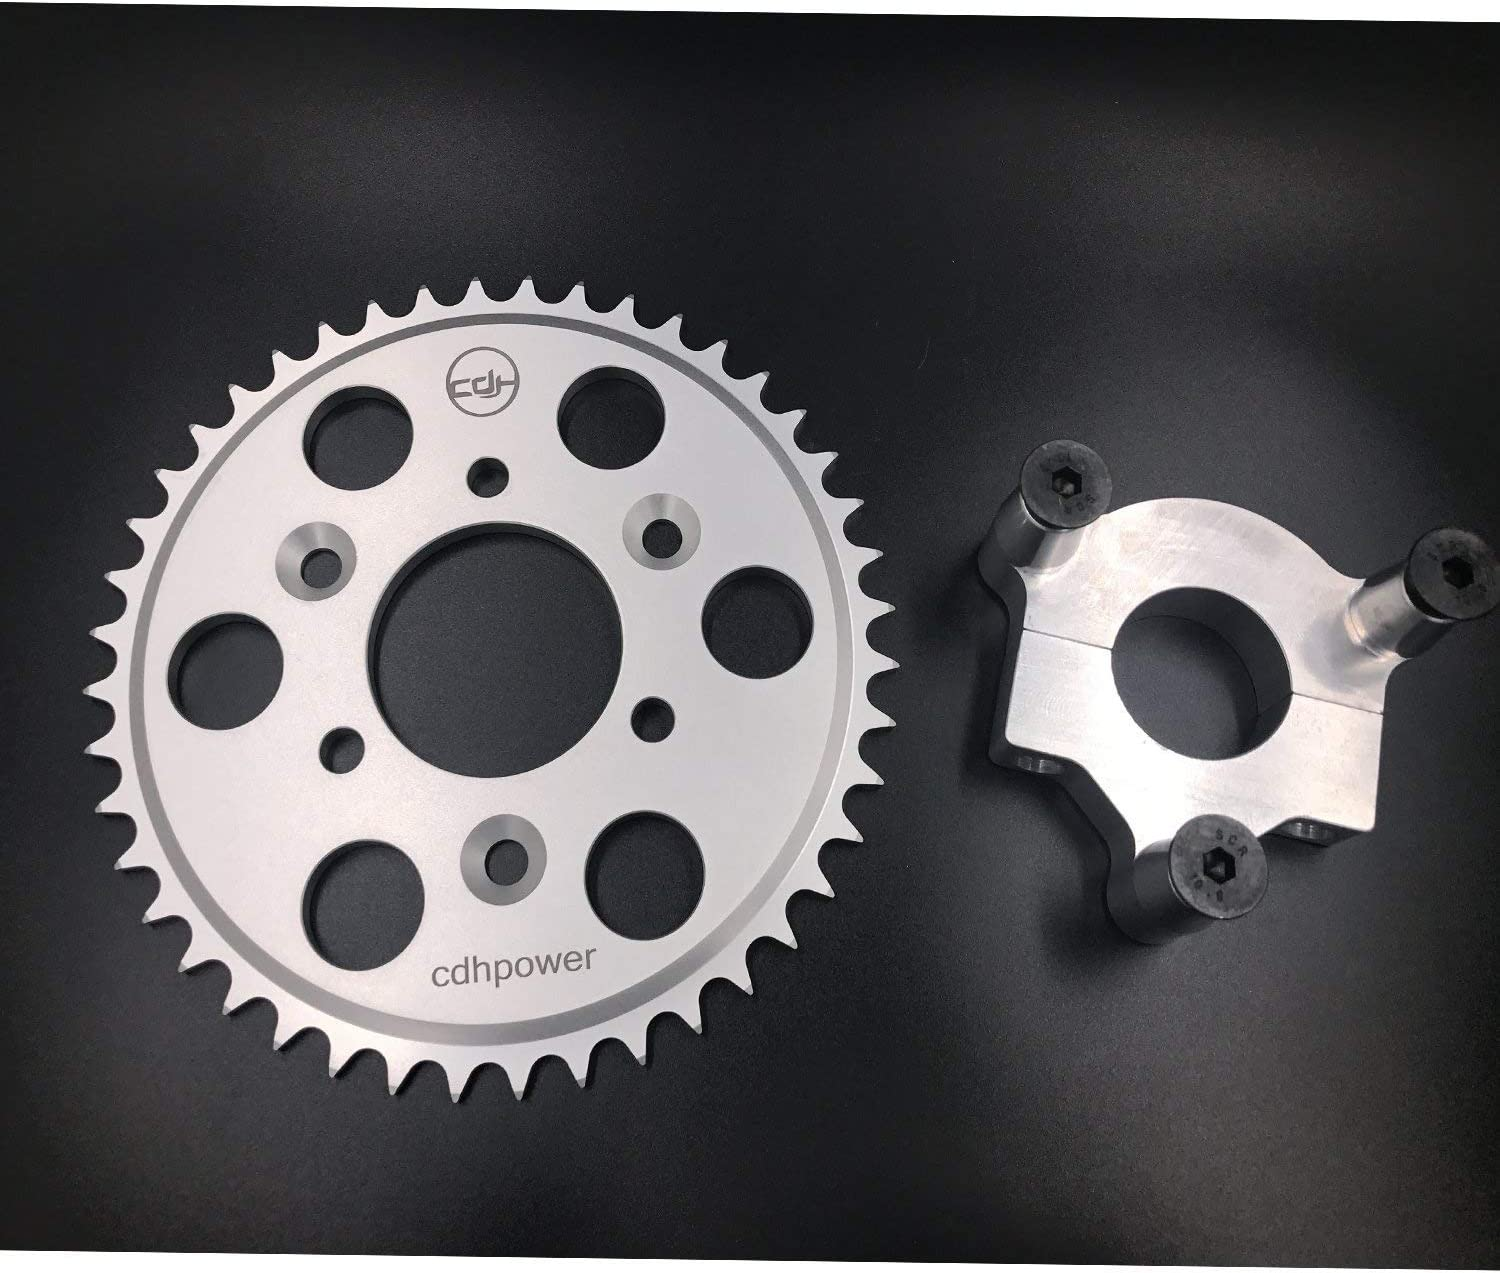 DONSP1986 Bike Rear Hub Adapter 1.5 and 44t Sprocket,2 Stroke and 4 Stroke Gas Motorized Bicycle